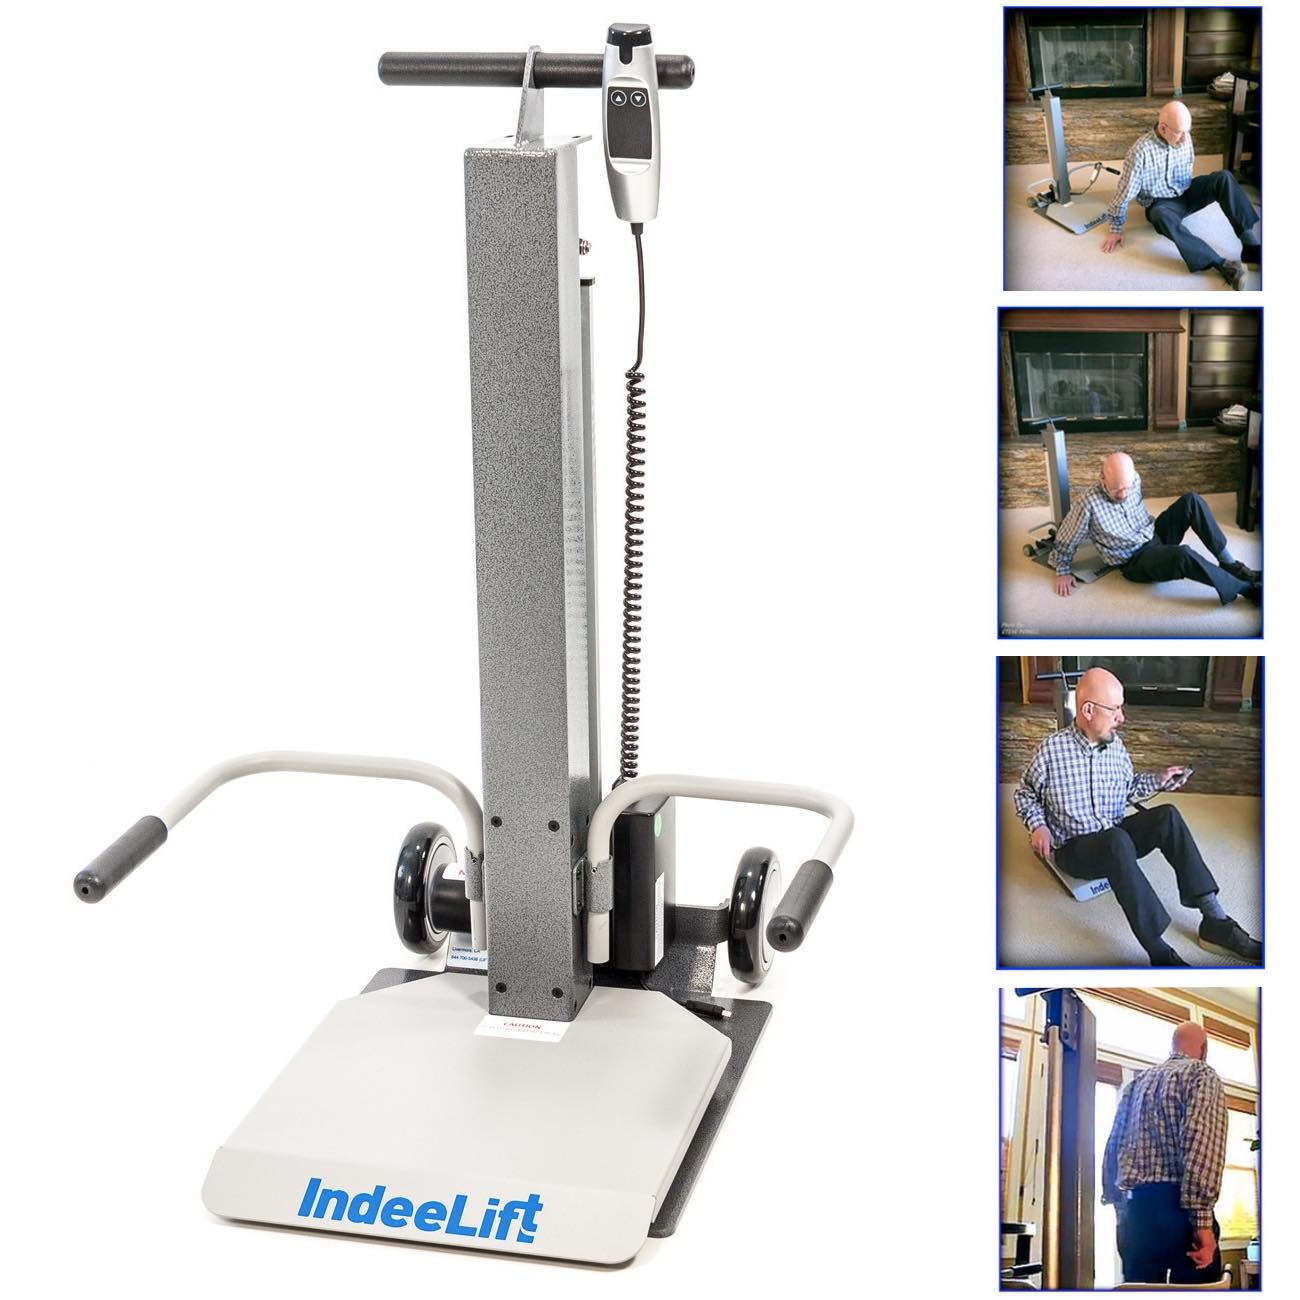 Indeelift Human Floor Lift For Fall Recovery